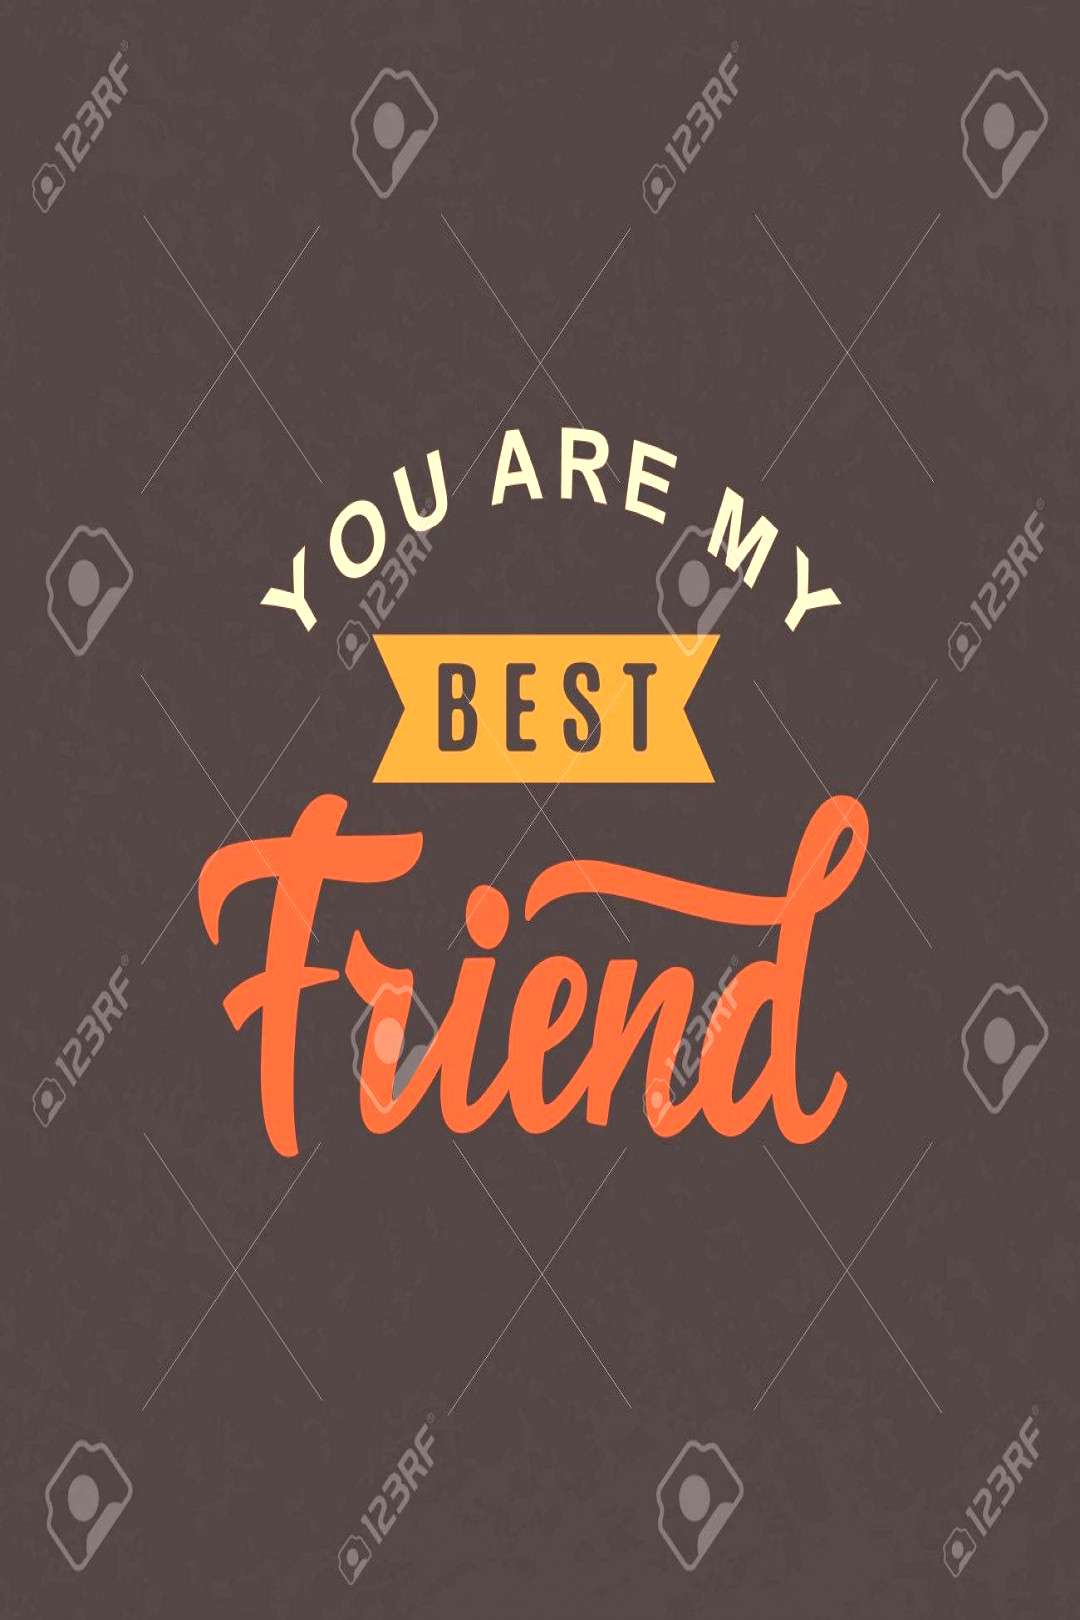 You are my best friend. Friendship Day cute poster. Hand written brush lettering, vintage retro sty